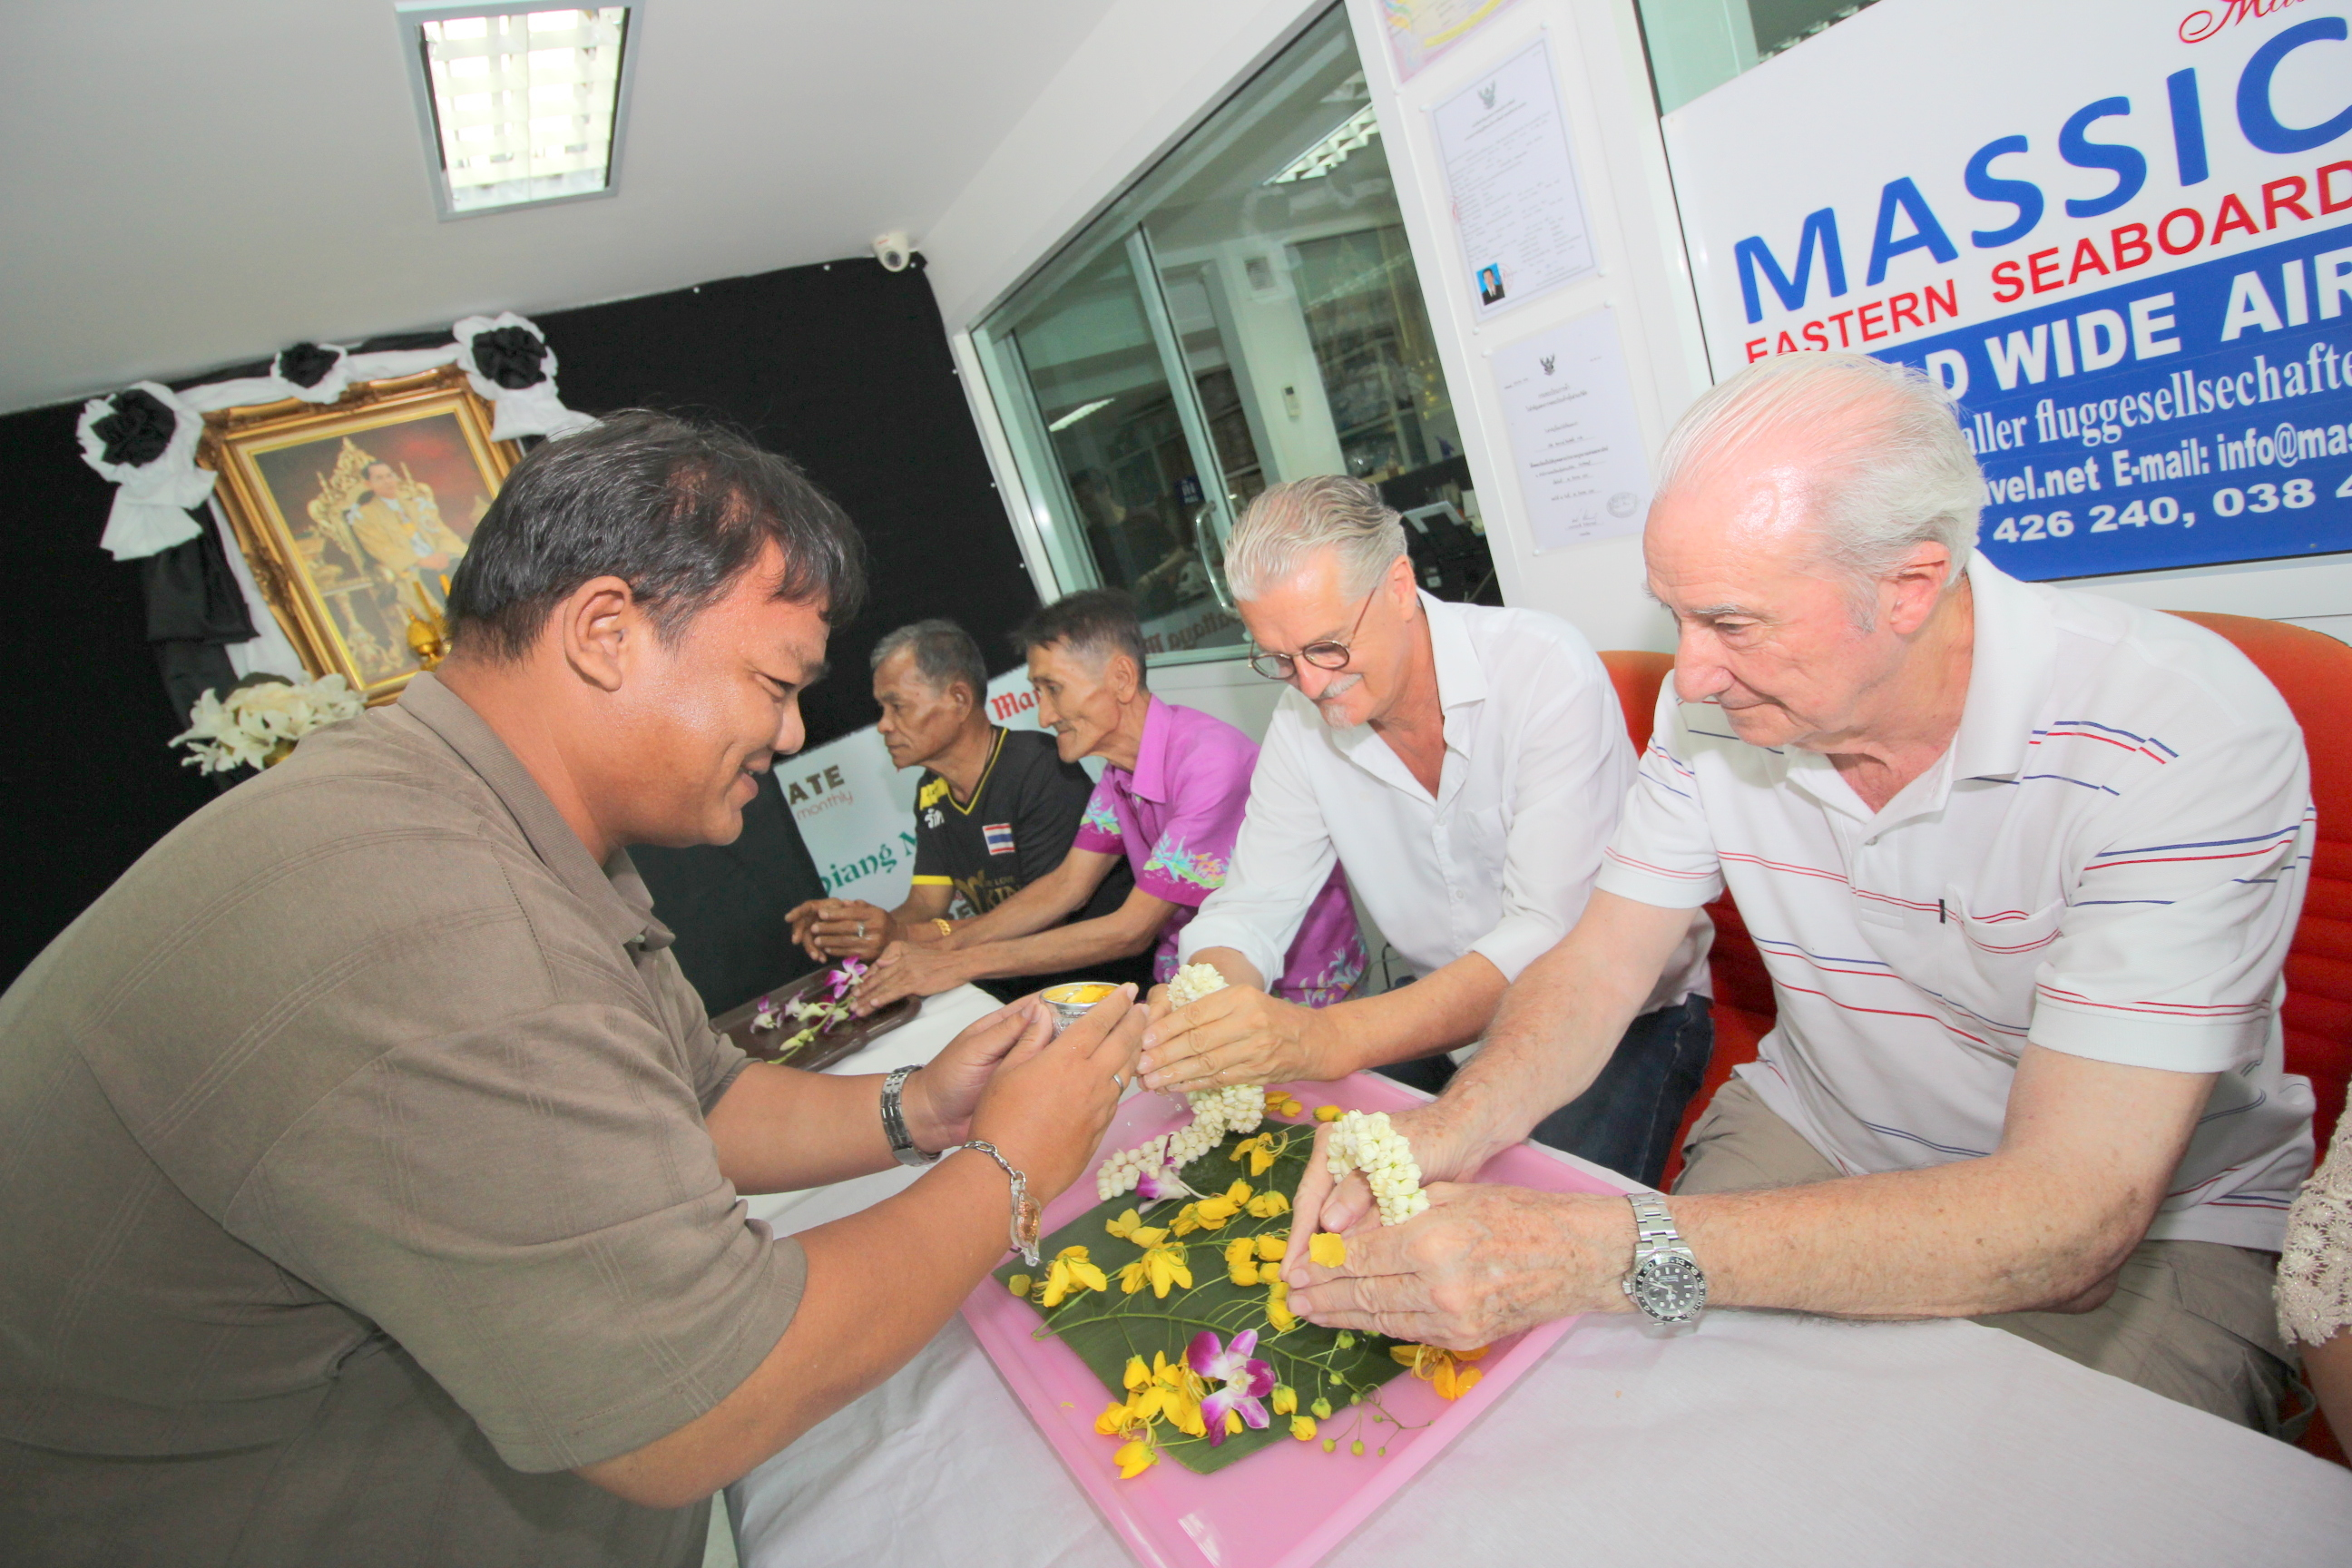 Thanawat Suansuk receives blessings from Jo Klemm and Dr. Iain Corness.